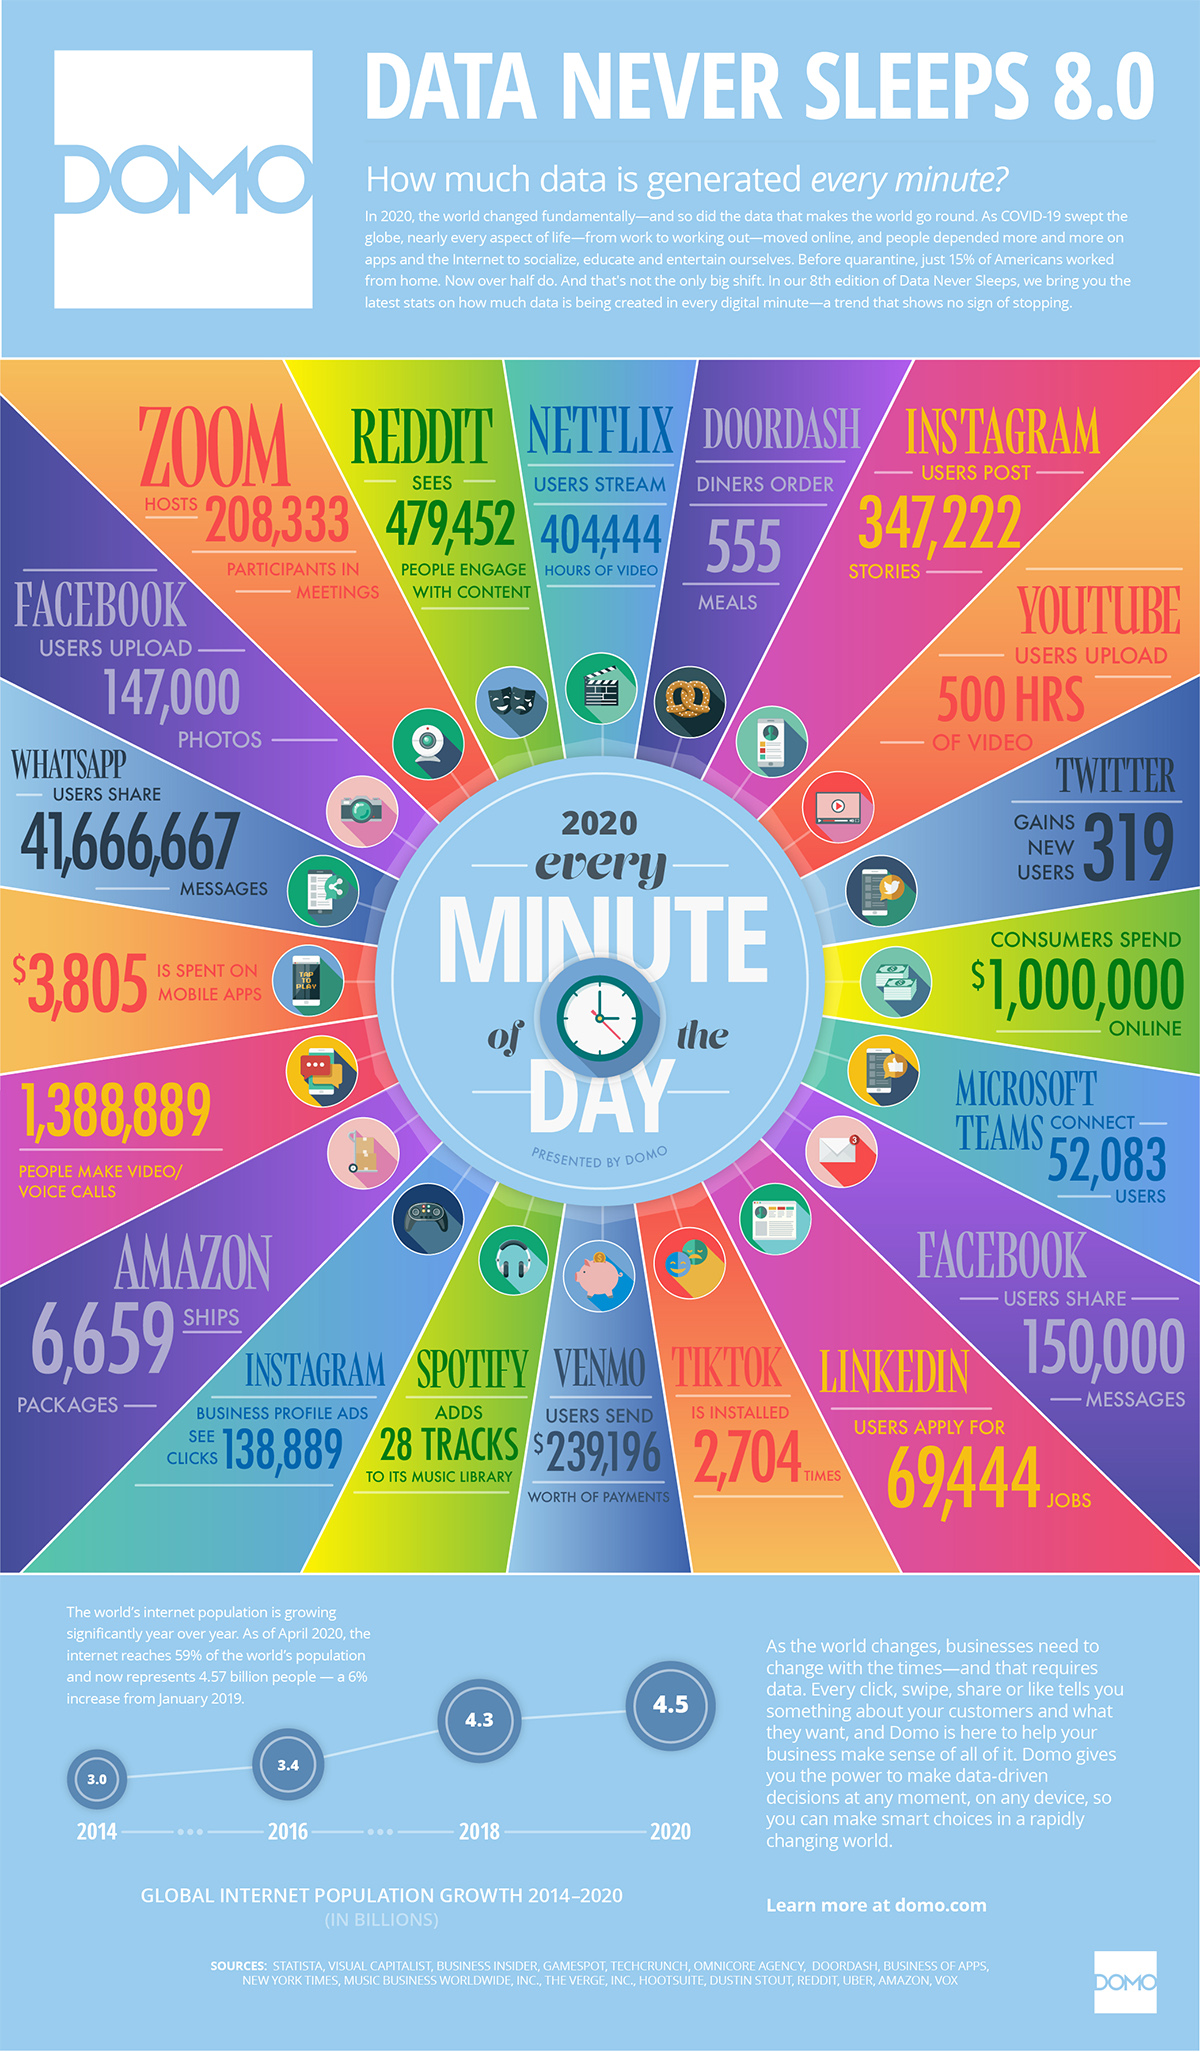 What Happens Every Minute on the Internet in 2020